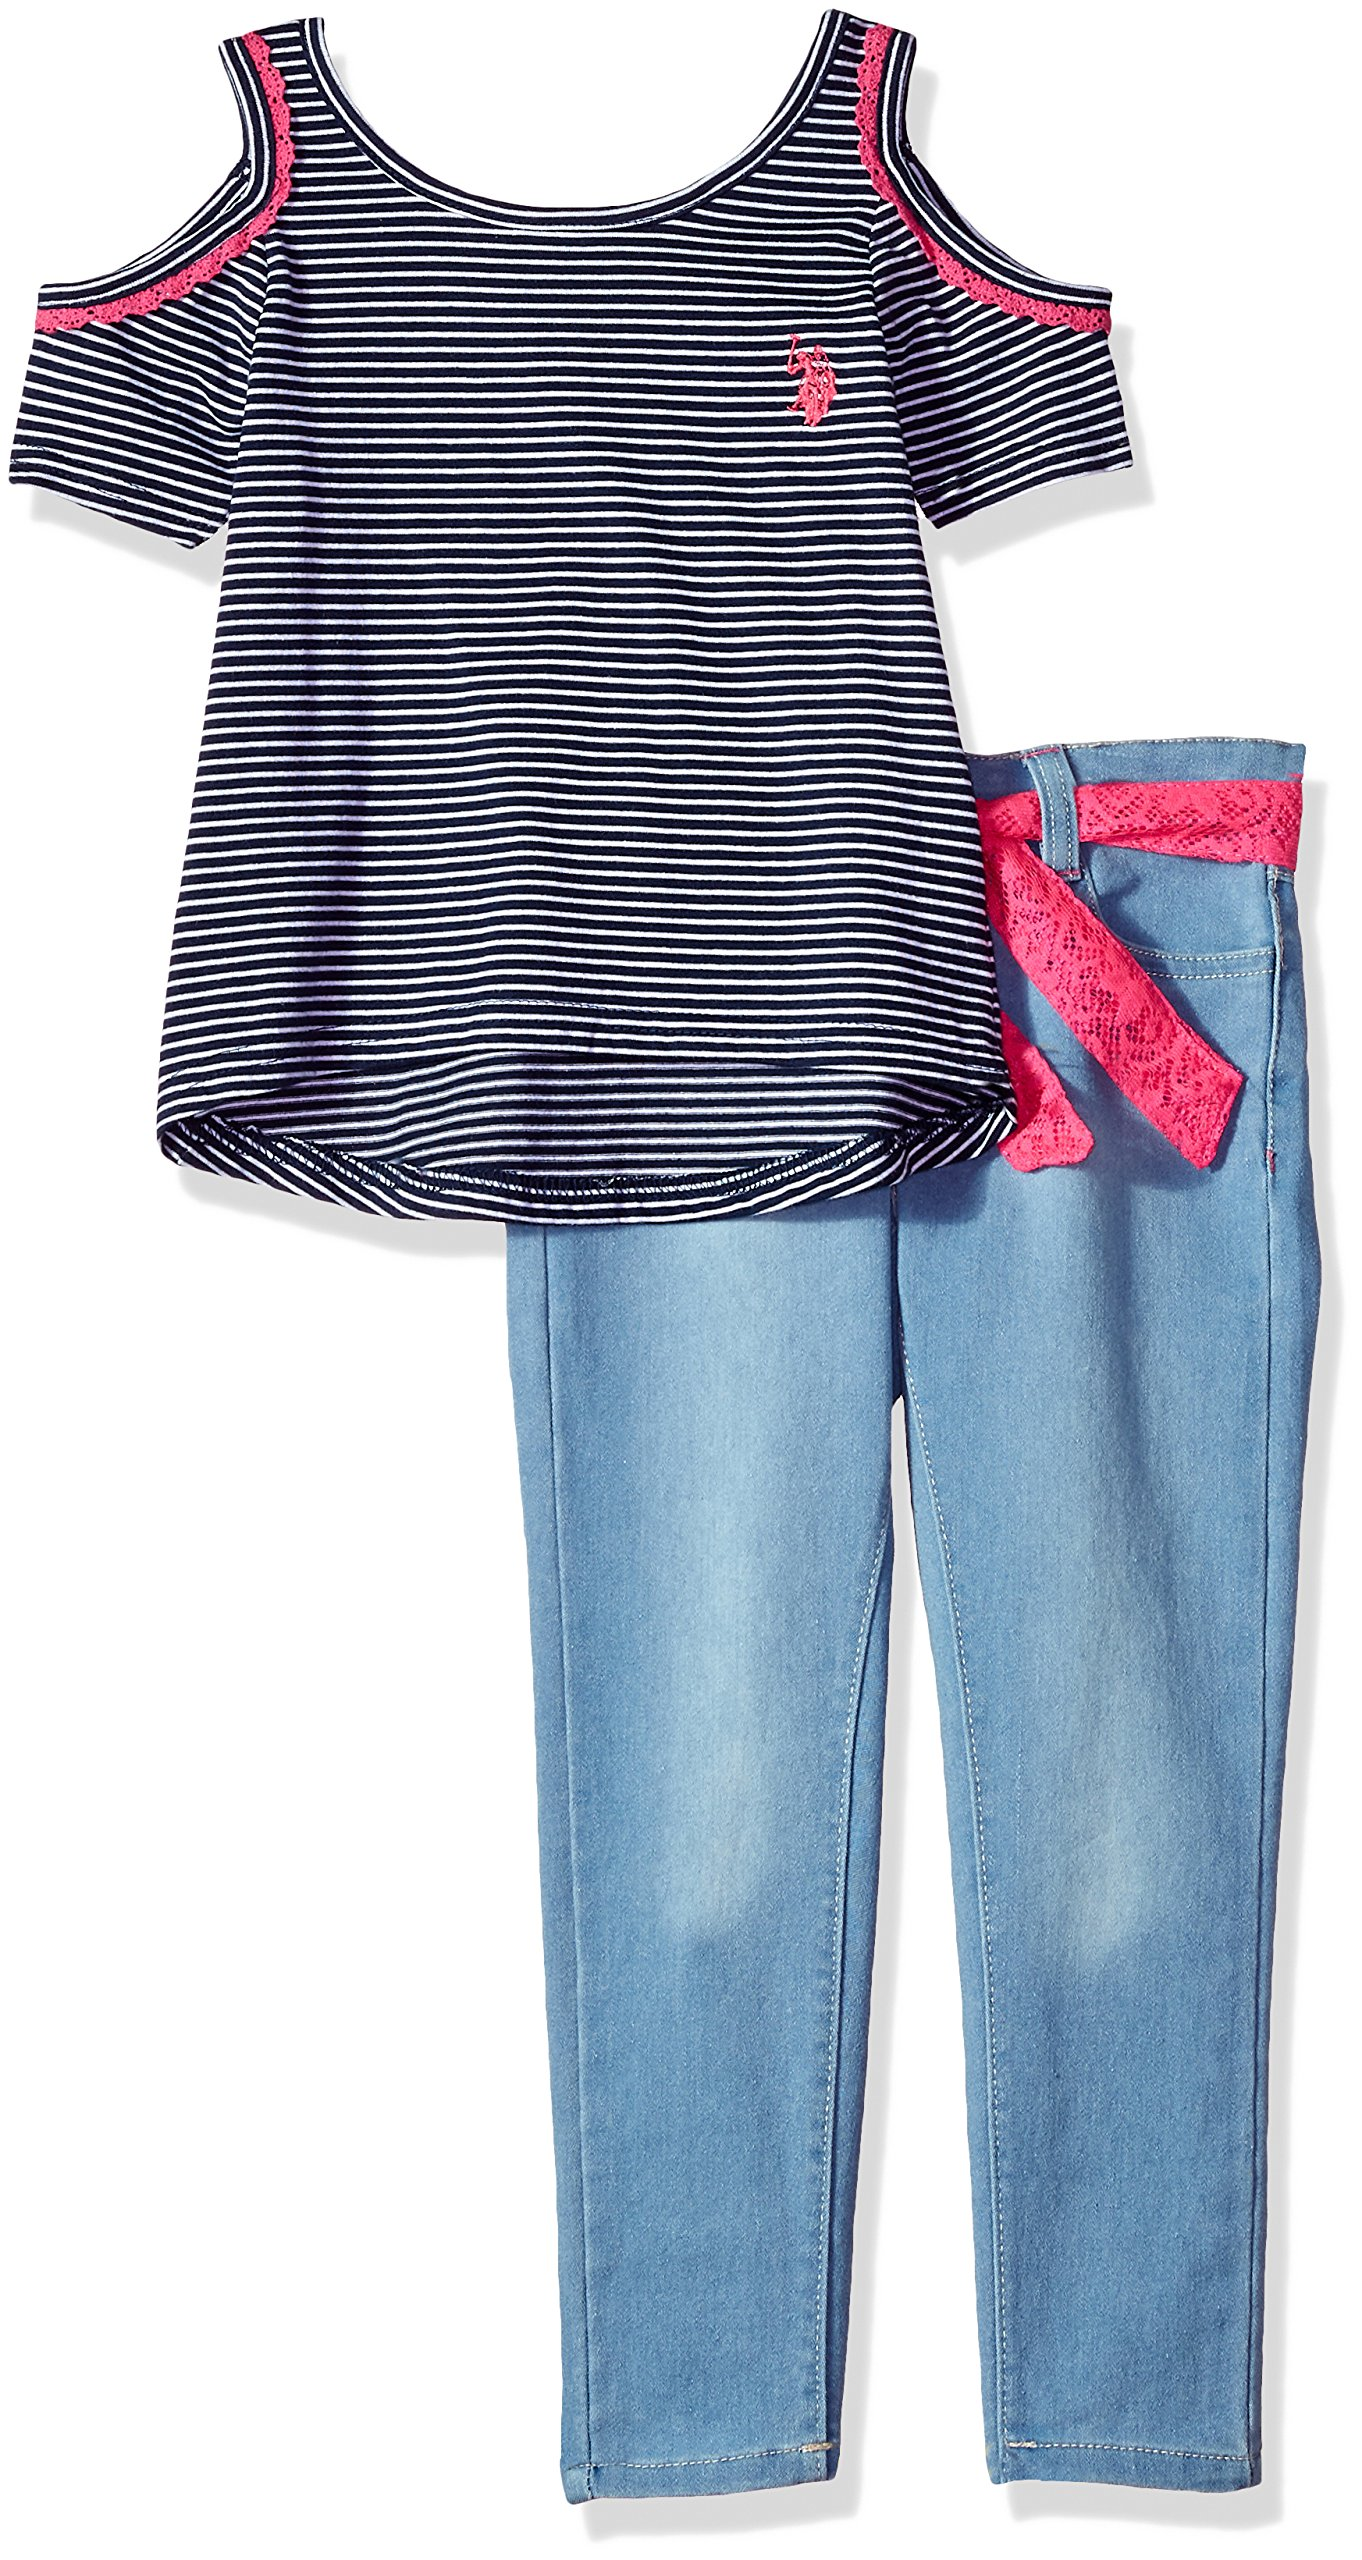 U.S. Polo Assn.. Little Girls' Fashion Top and Pant Set, Cold Should Stripe Top Sateen Denim Multi, 5